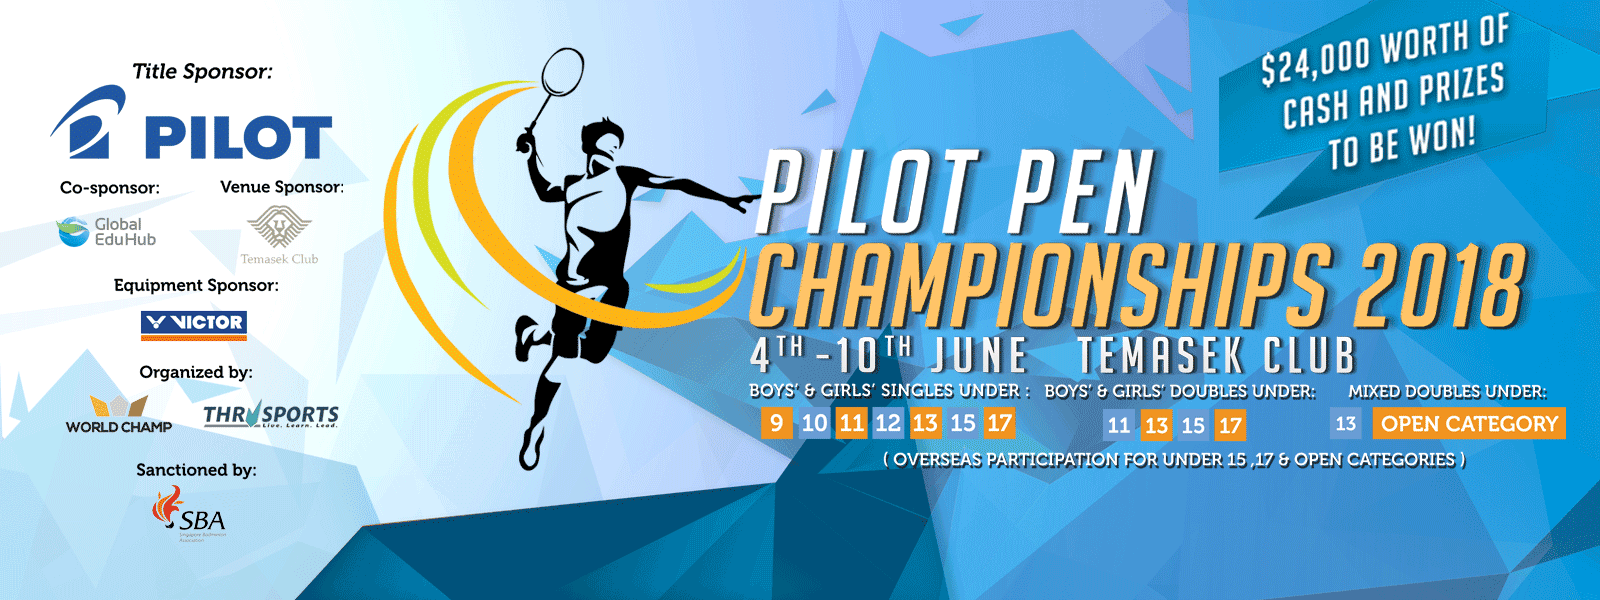 Learn More About the Upcoming Pilot Pen Championships 2018!